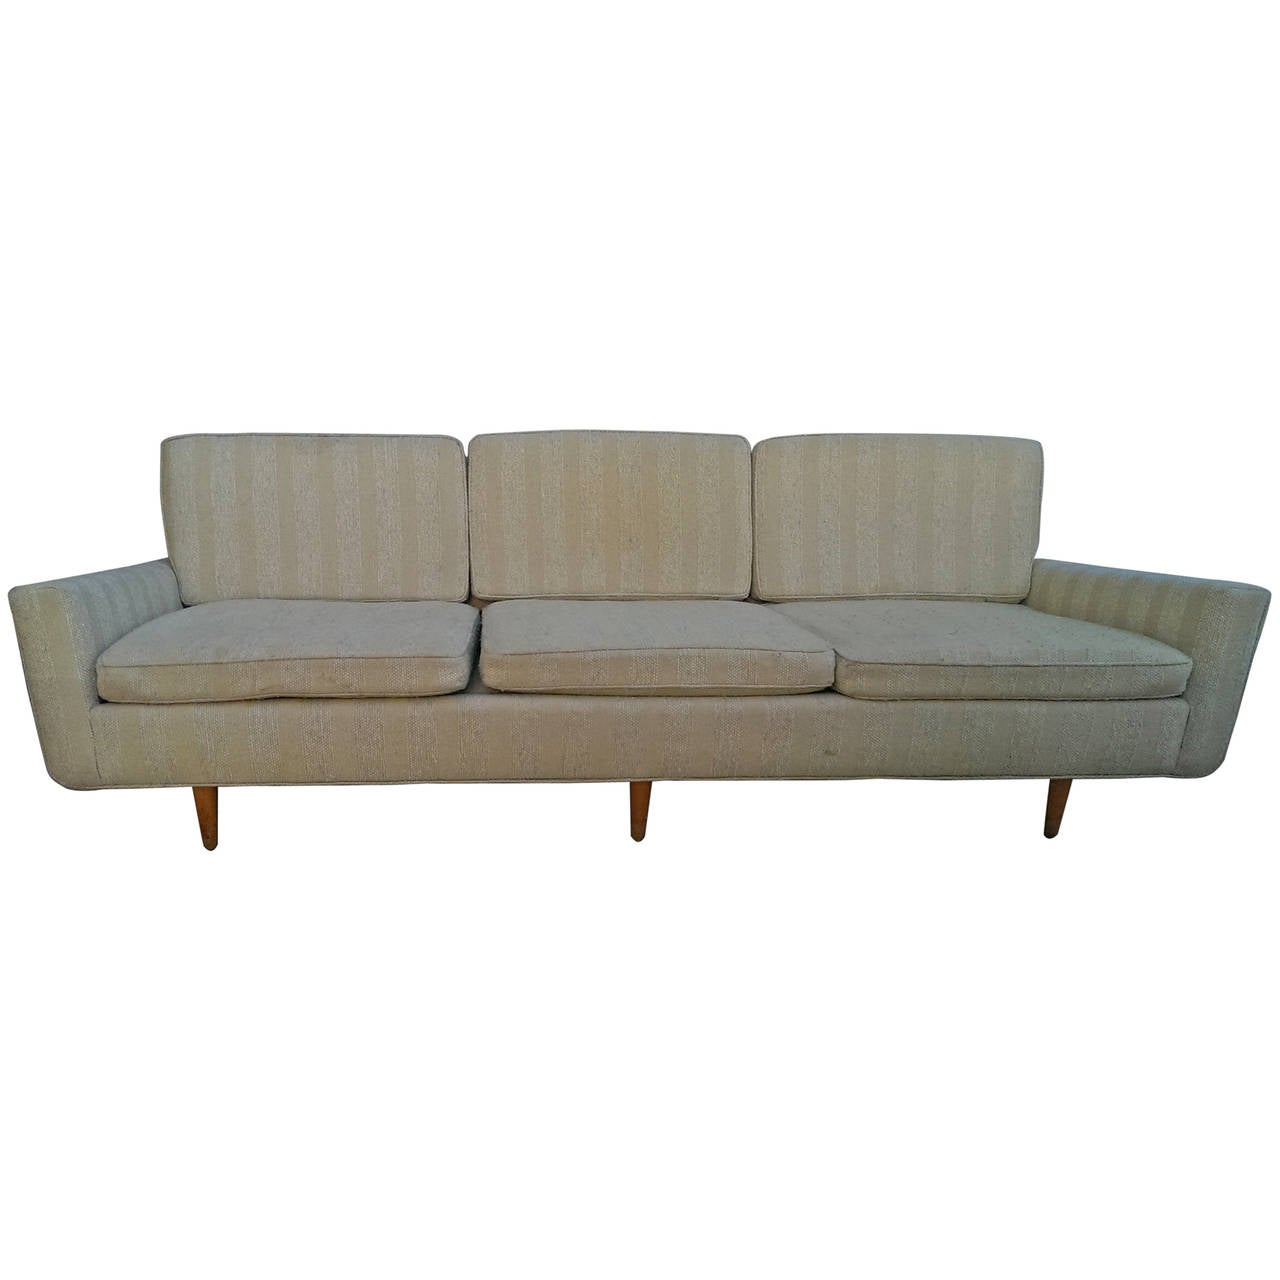 Florence knoll sofa by knoll associates at 1stdibs for Knoll and associates